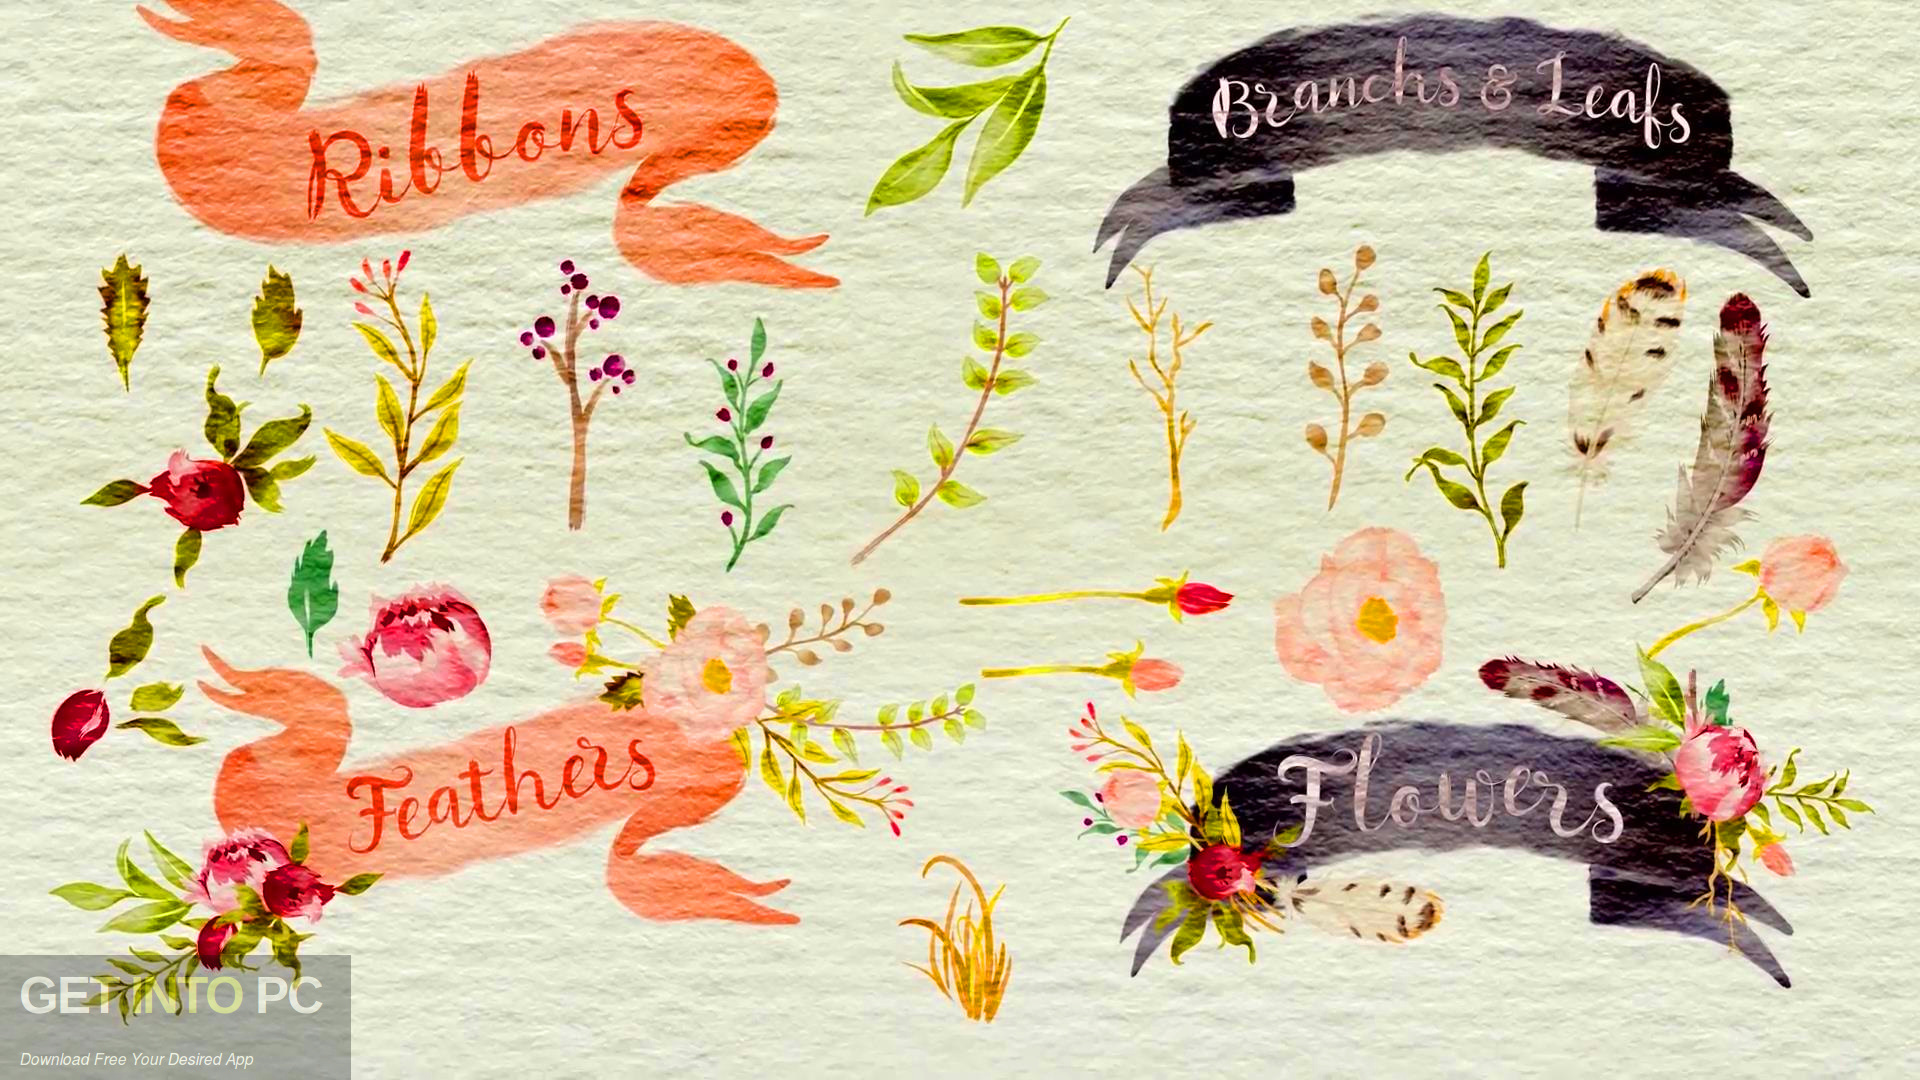 VideoHive - Handwriting Watercolor Package for After Effects Latest Version Download-GetintoPC.com